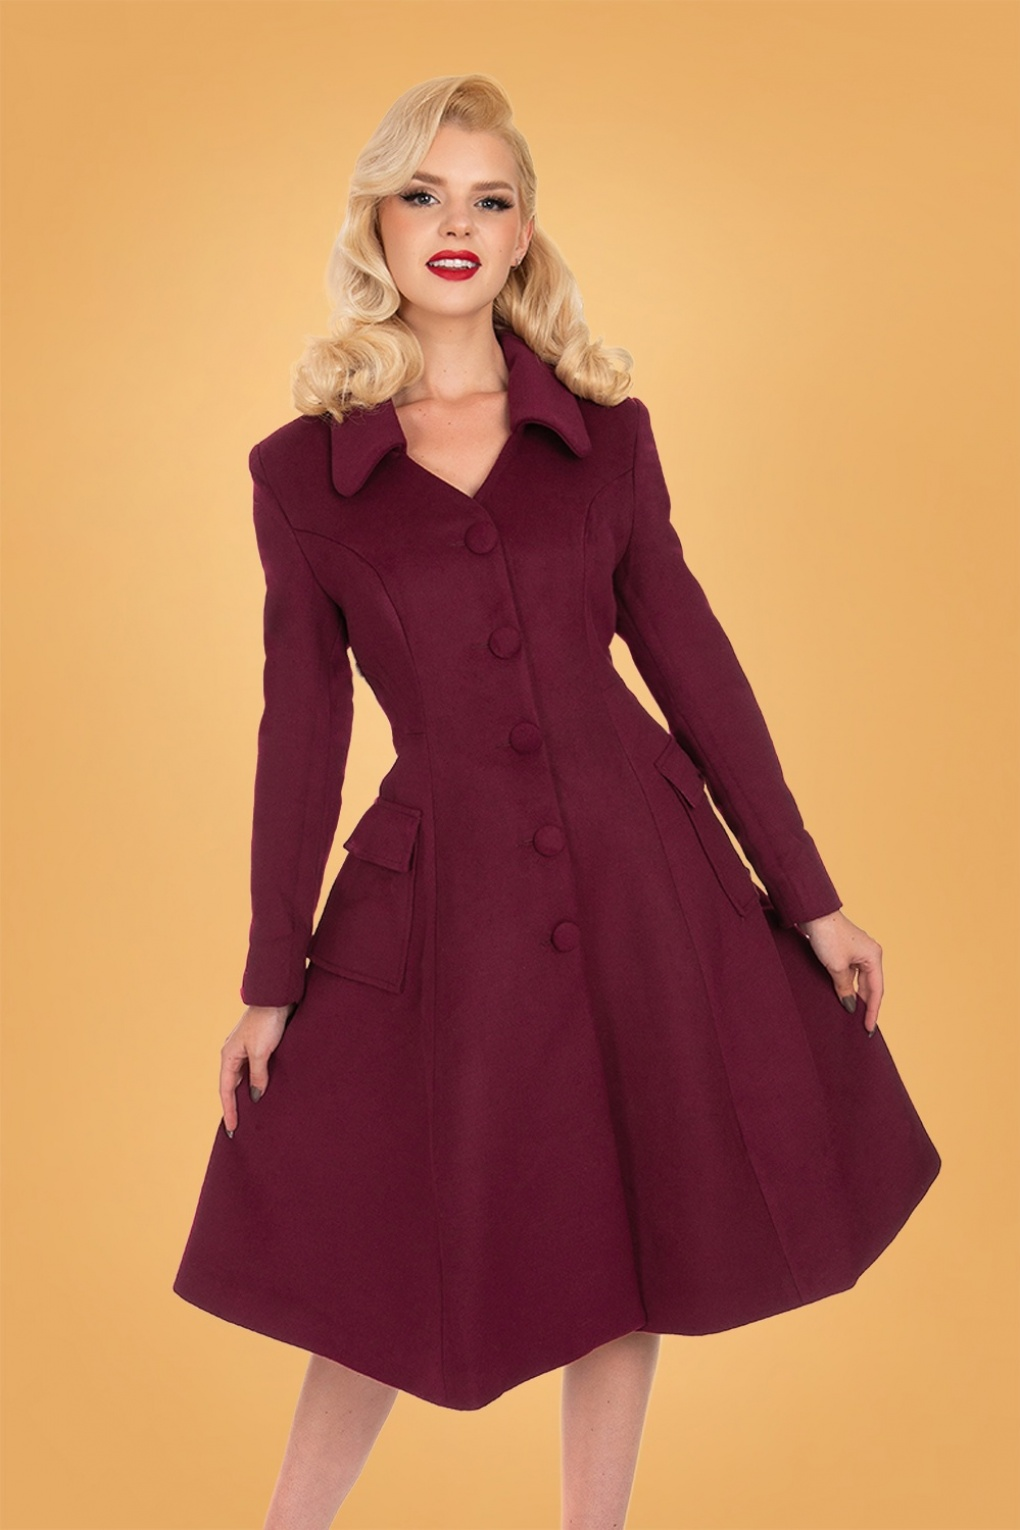 1950s Jackets, Coats, Bolero | Swing, Pin Up, Rockabilly 50s Rosa Swing Coat in Burgundy £75.72 AT vintagedancer.com